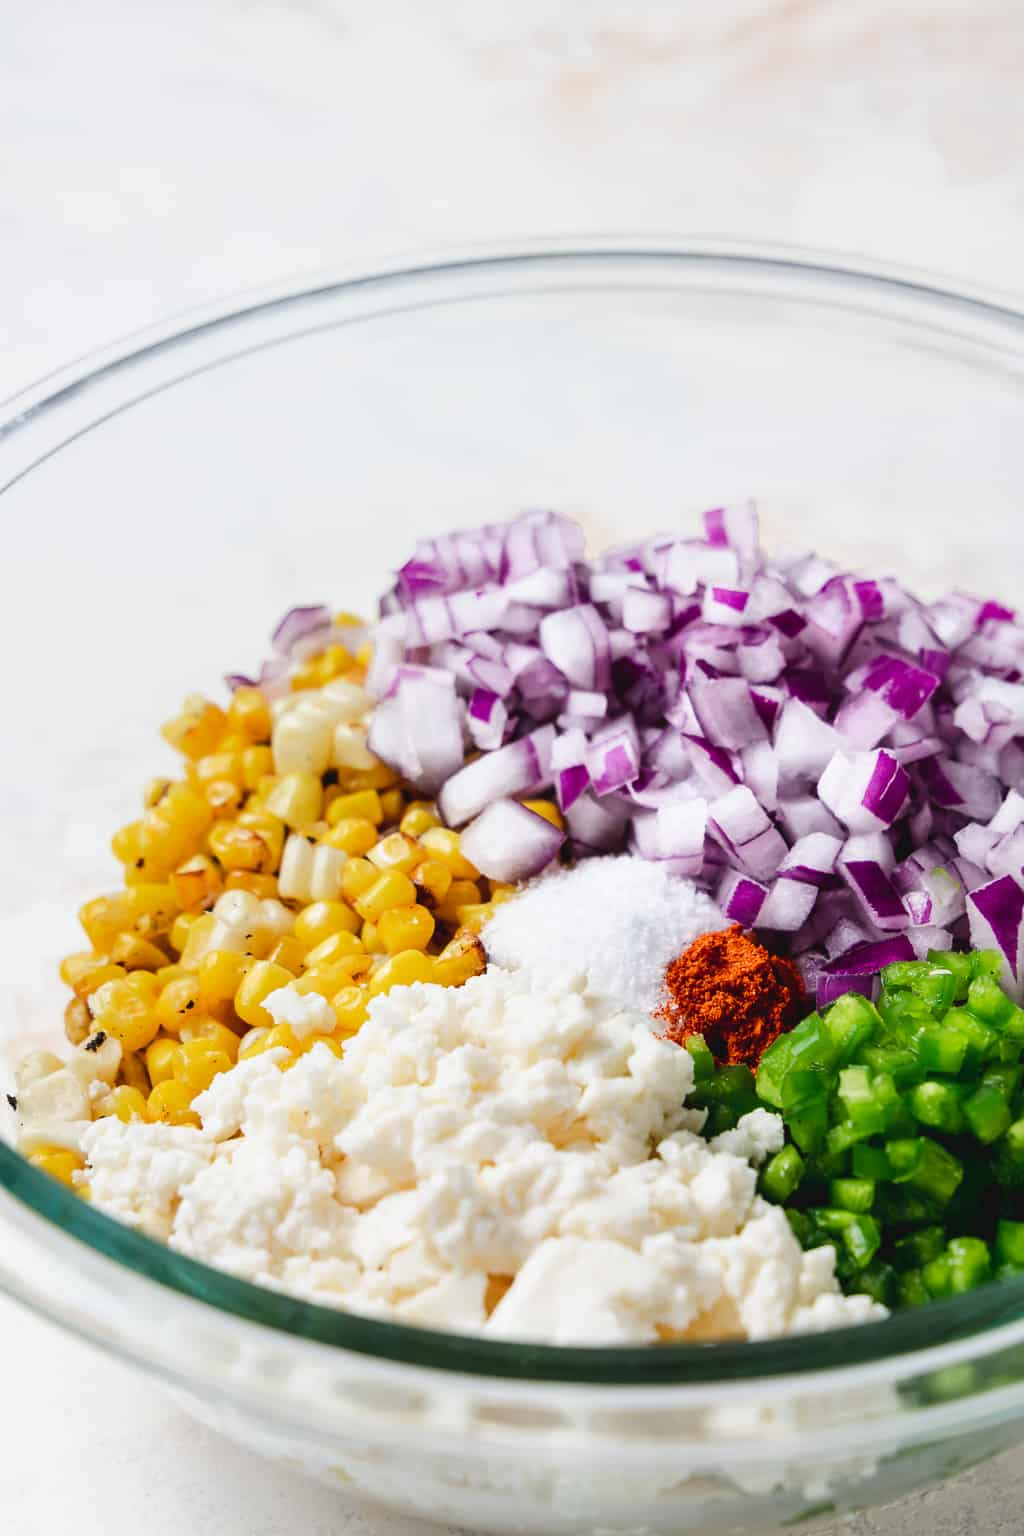 ingredients for spicy street corn dip in glass bowl